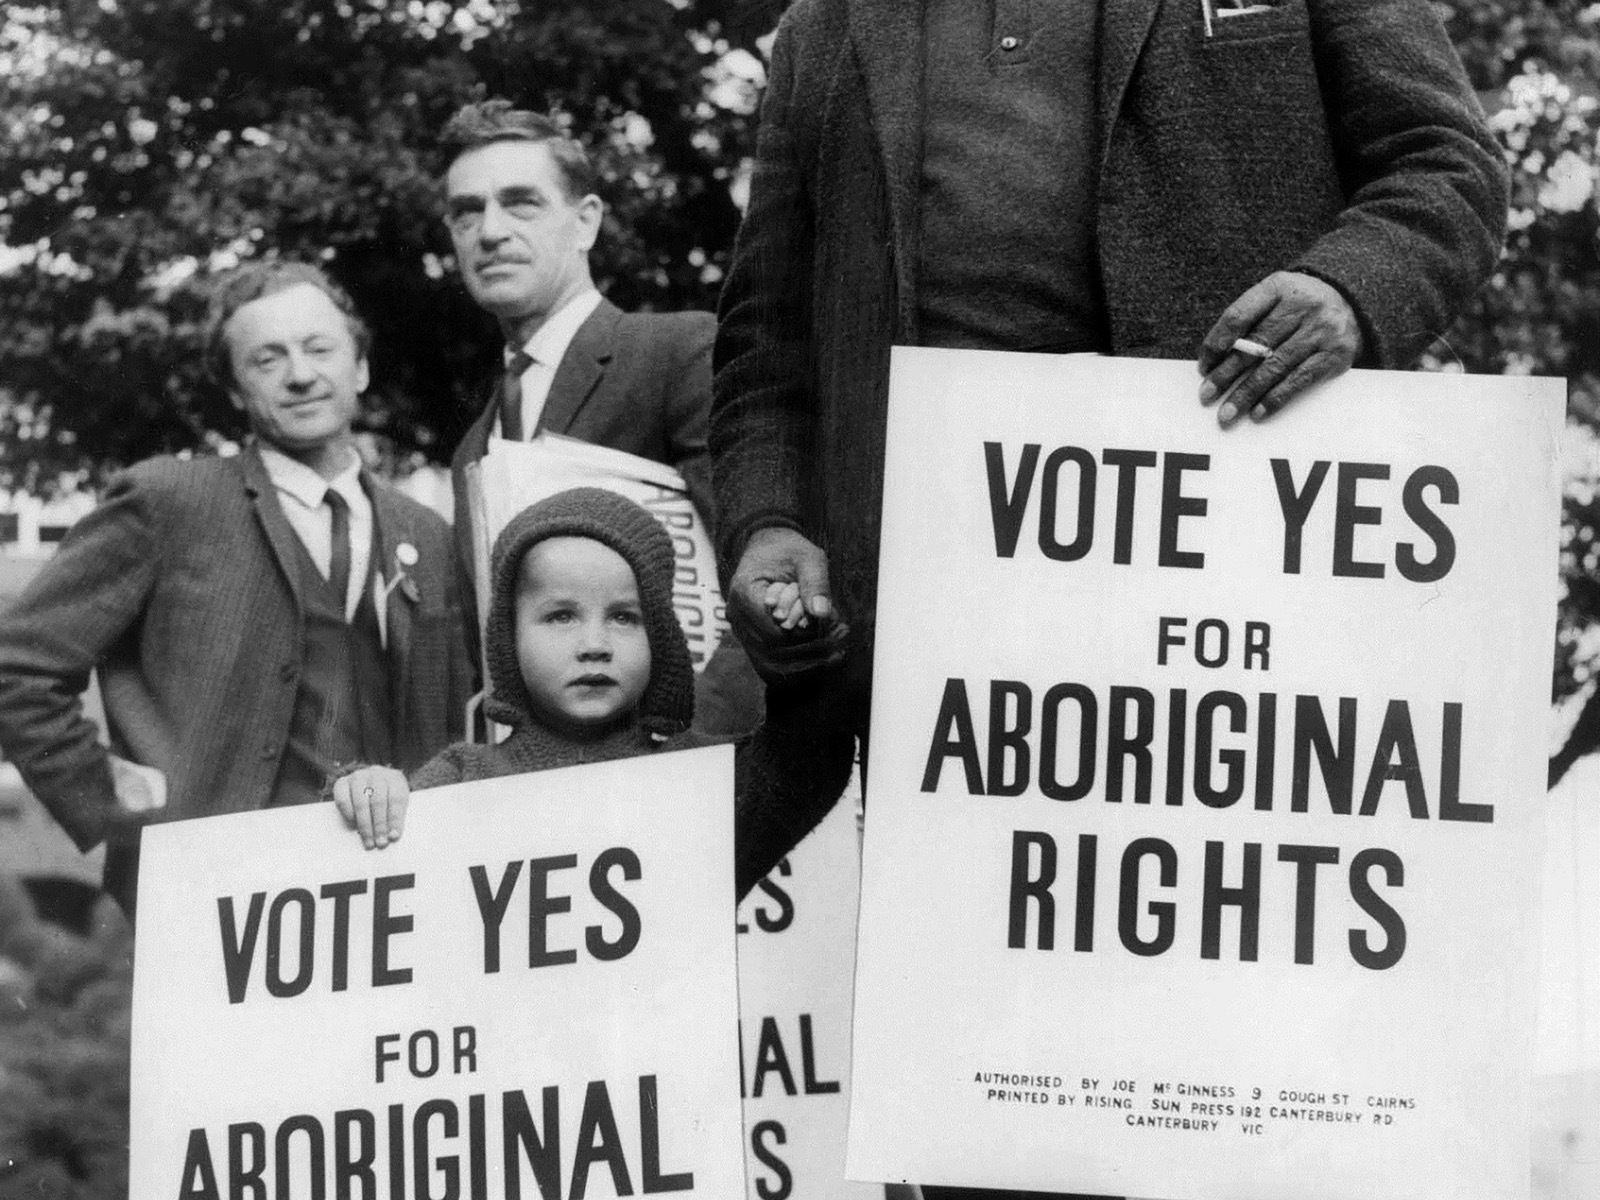 Bill Onus, President of the Victorian Aborigines' Advancement League May 1967 Photo Fairfax Syndicat